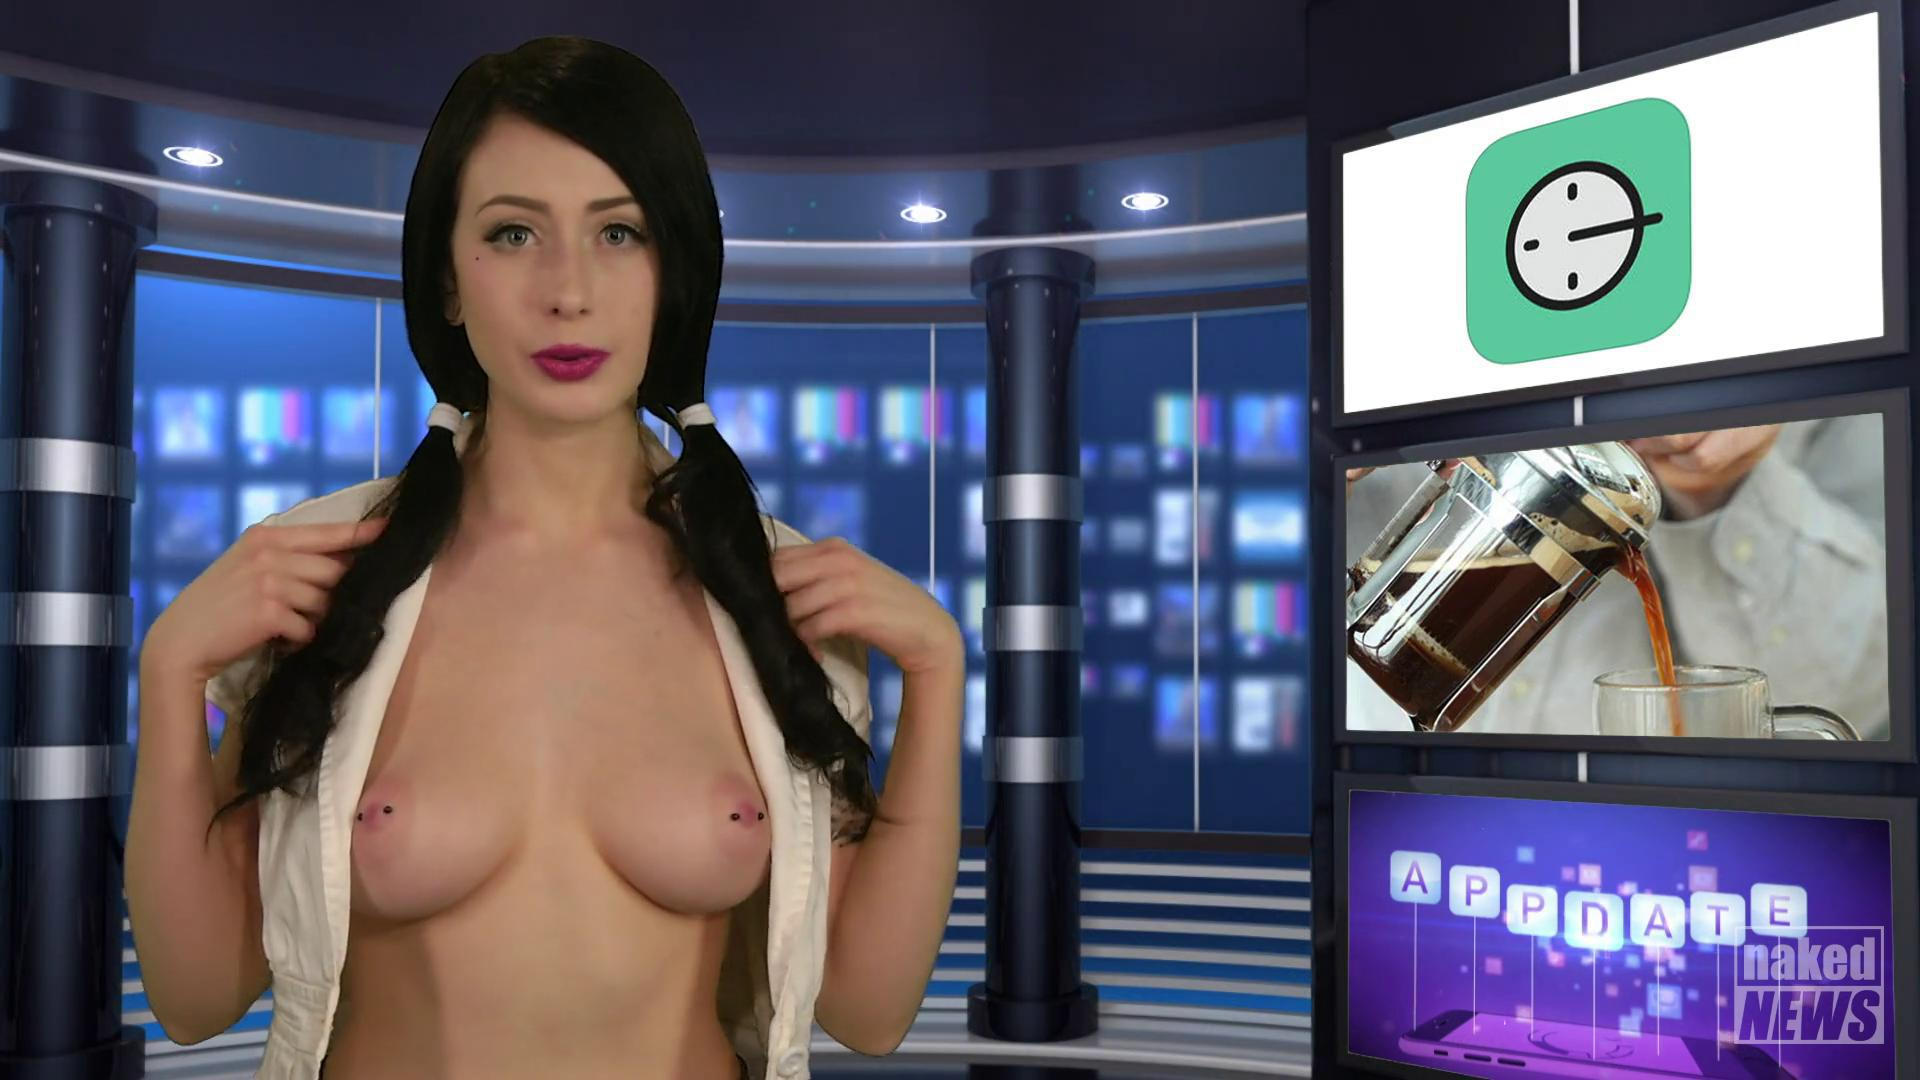 French naked news anchor